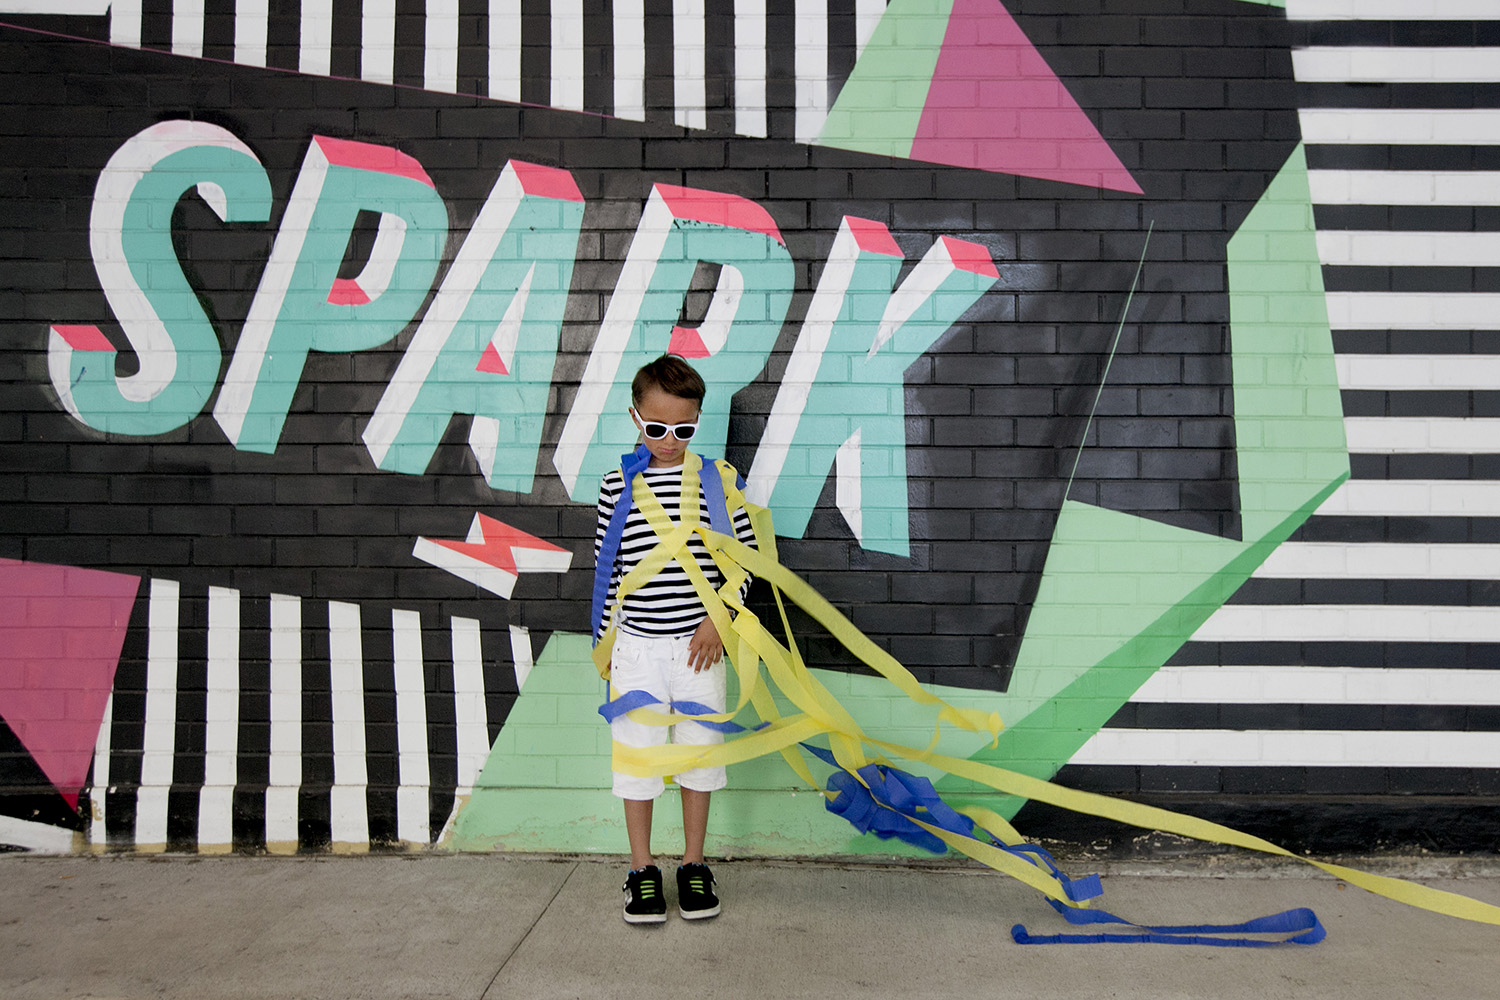 lifestyle-editorial-children-washington-dc-malek-naz-photography-contempo-kids-crystal-city-no-kings-collective-mural.jpg